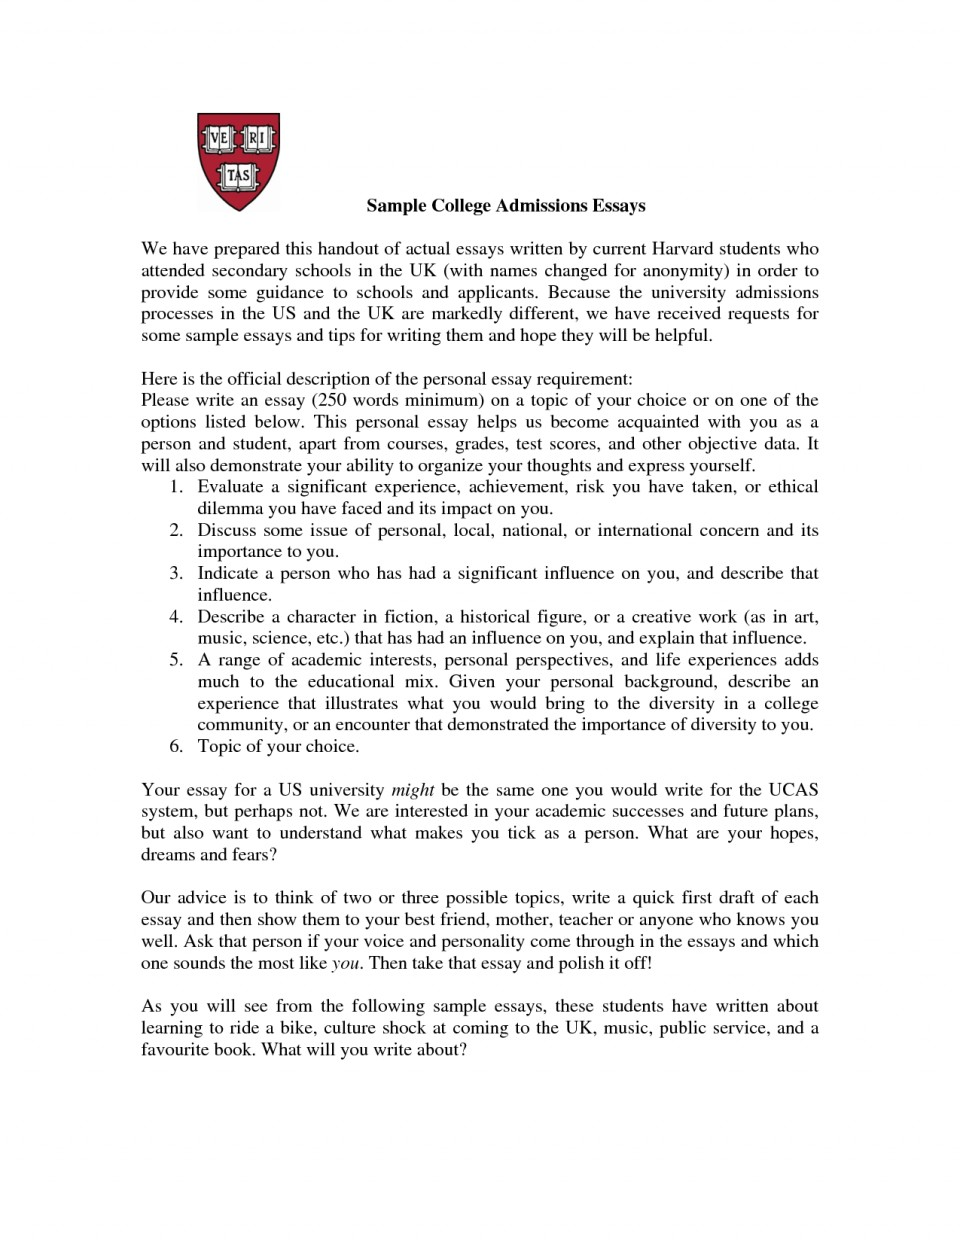 025 Essay Example College Heading What To Write Application About Incredible Admissions Format Papers 960